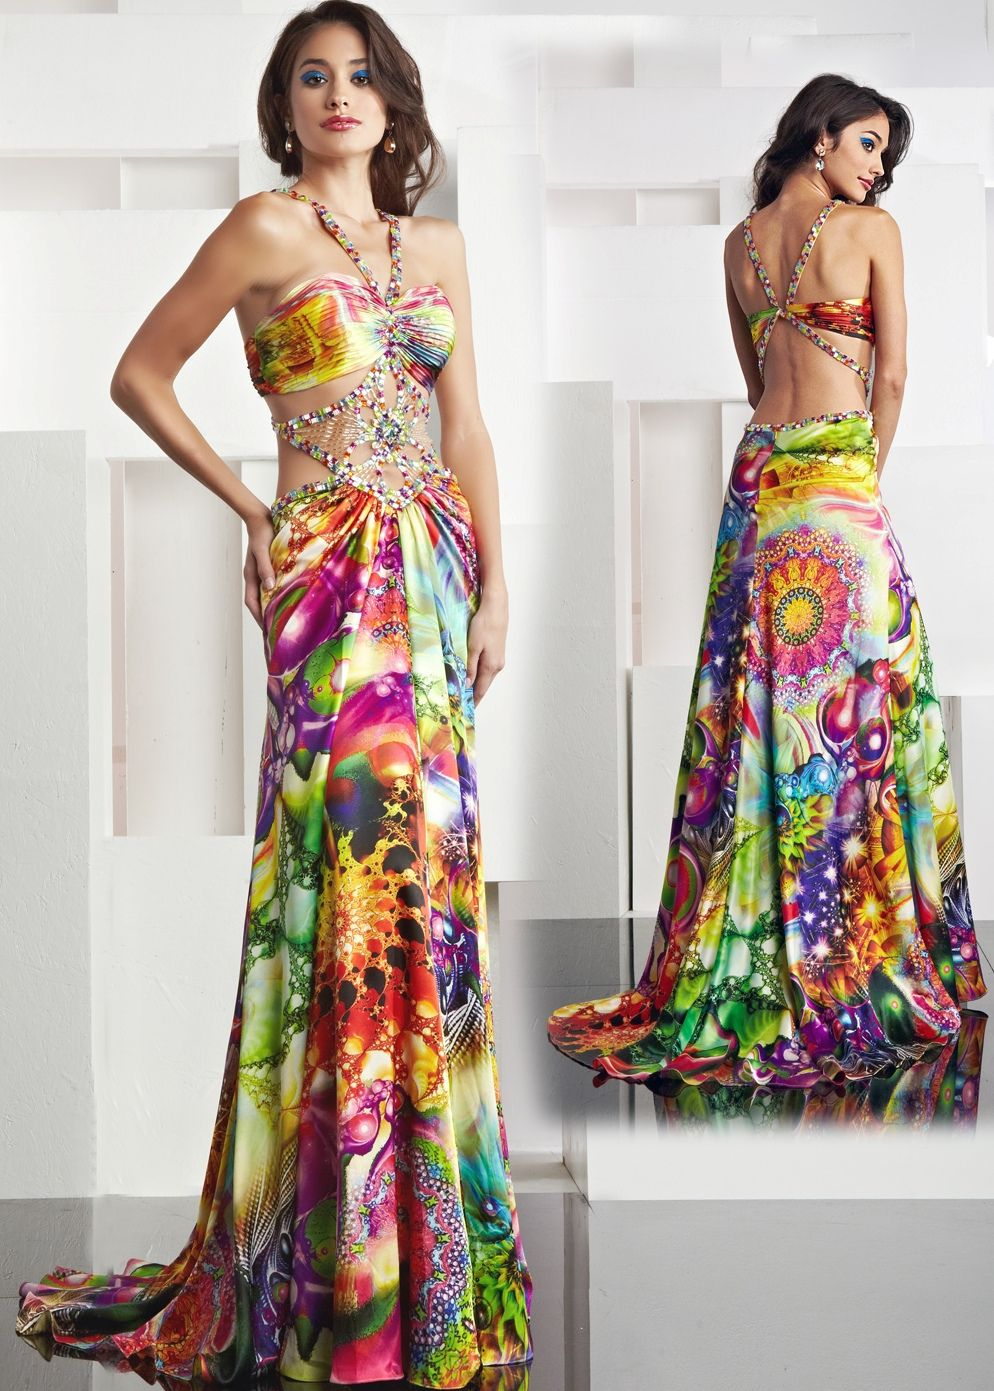 Most beautiful dress ive ever seen gownsdresses formalevening